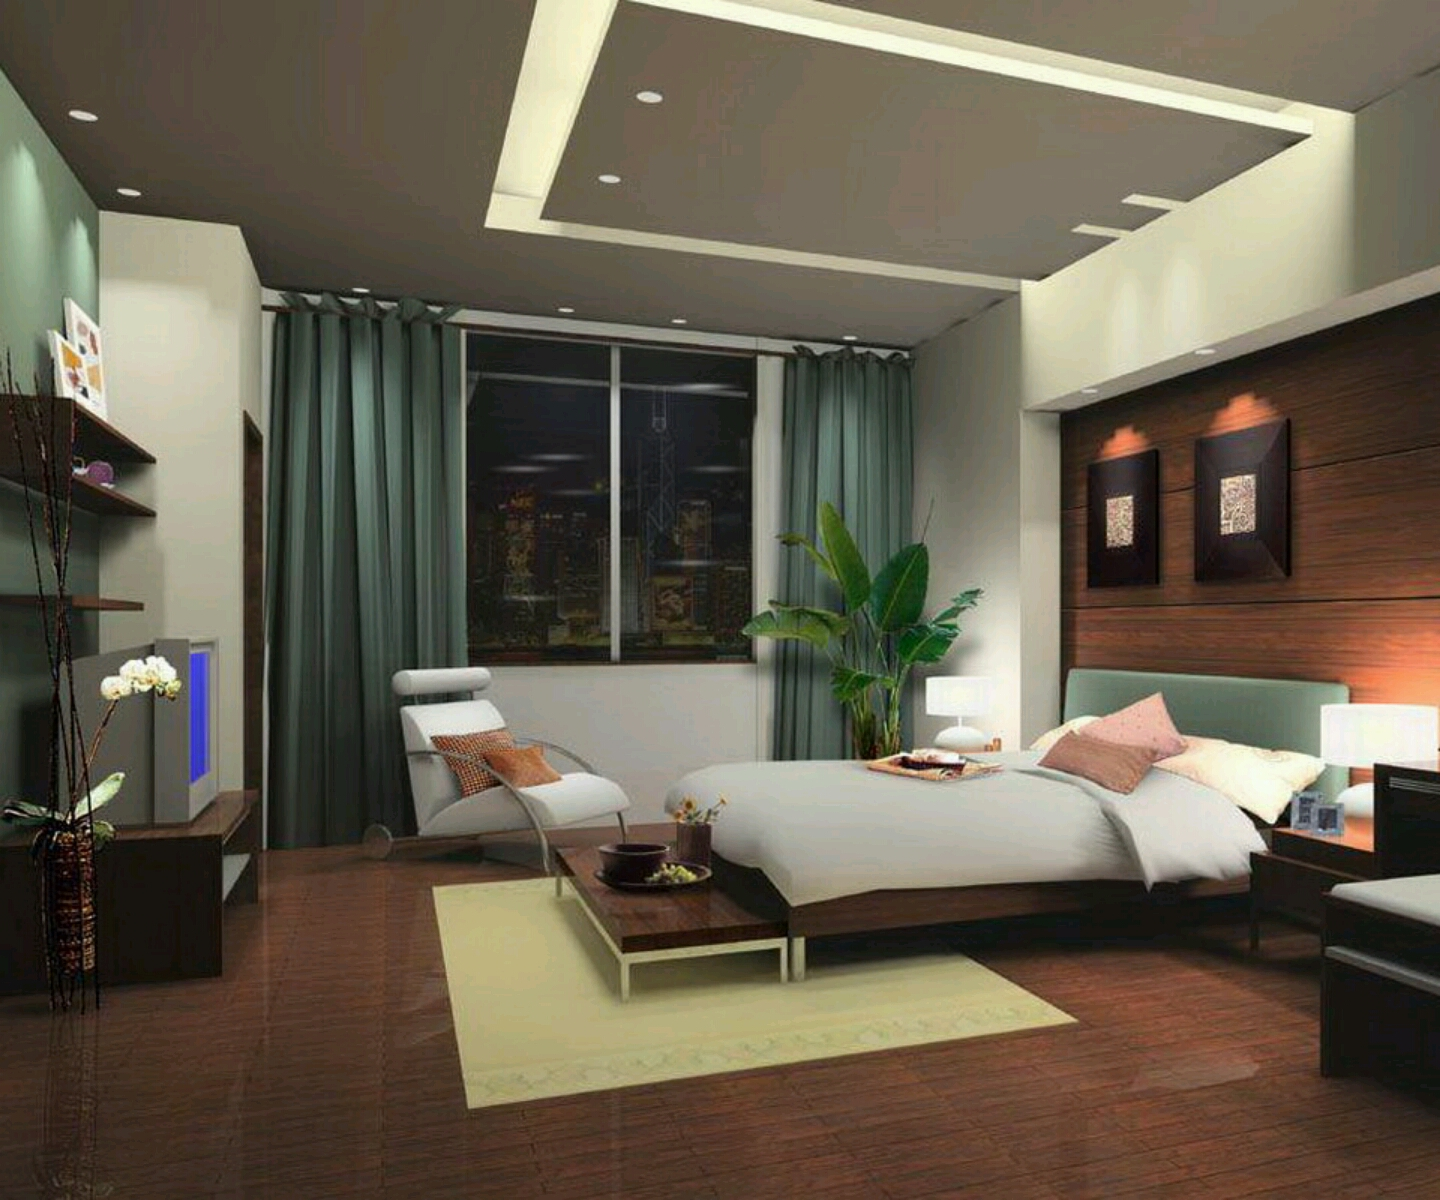 new home designs latest modern bedrooms designs best ideas ForNew Bedroom Design Images